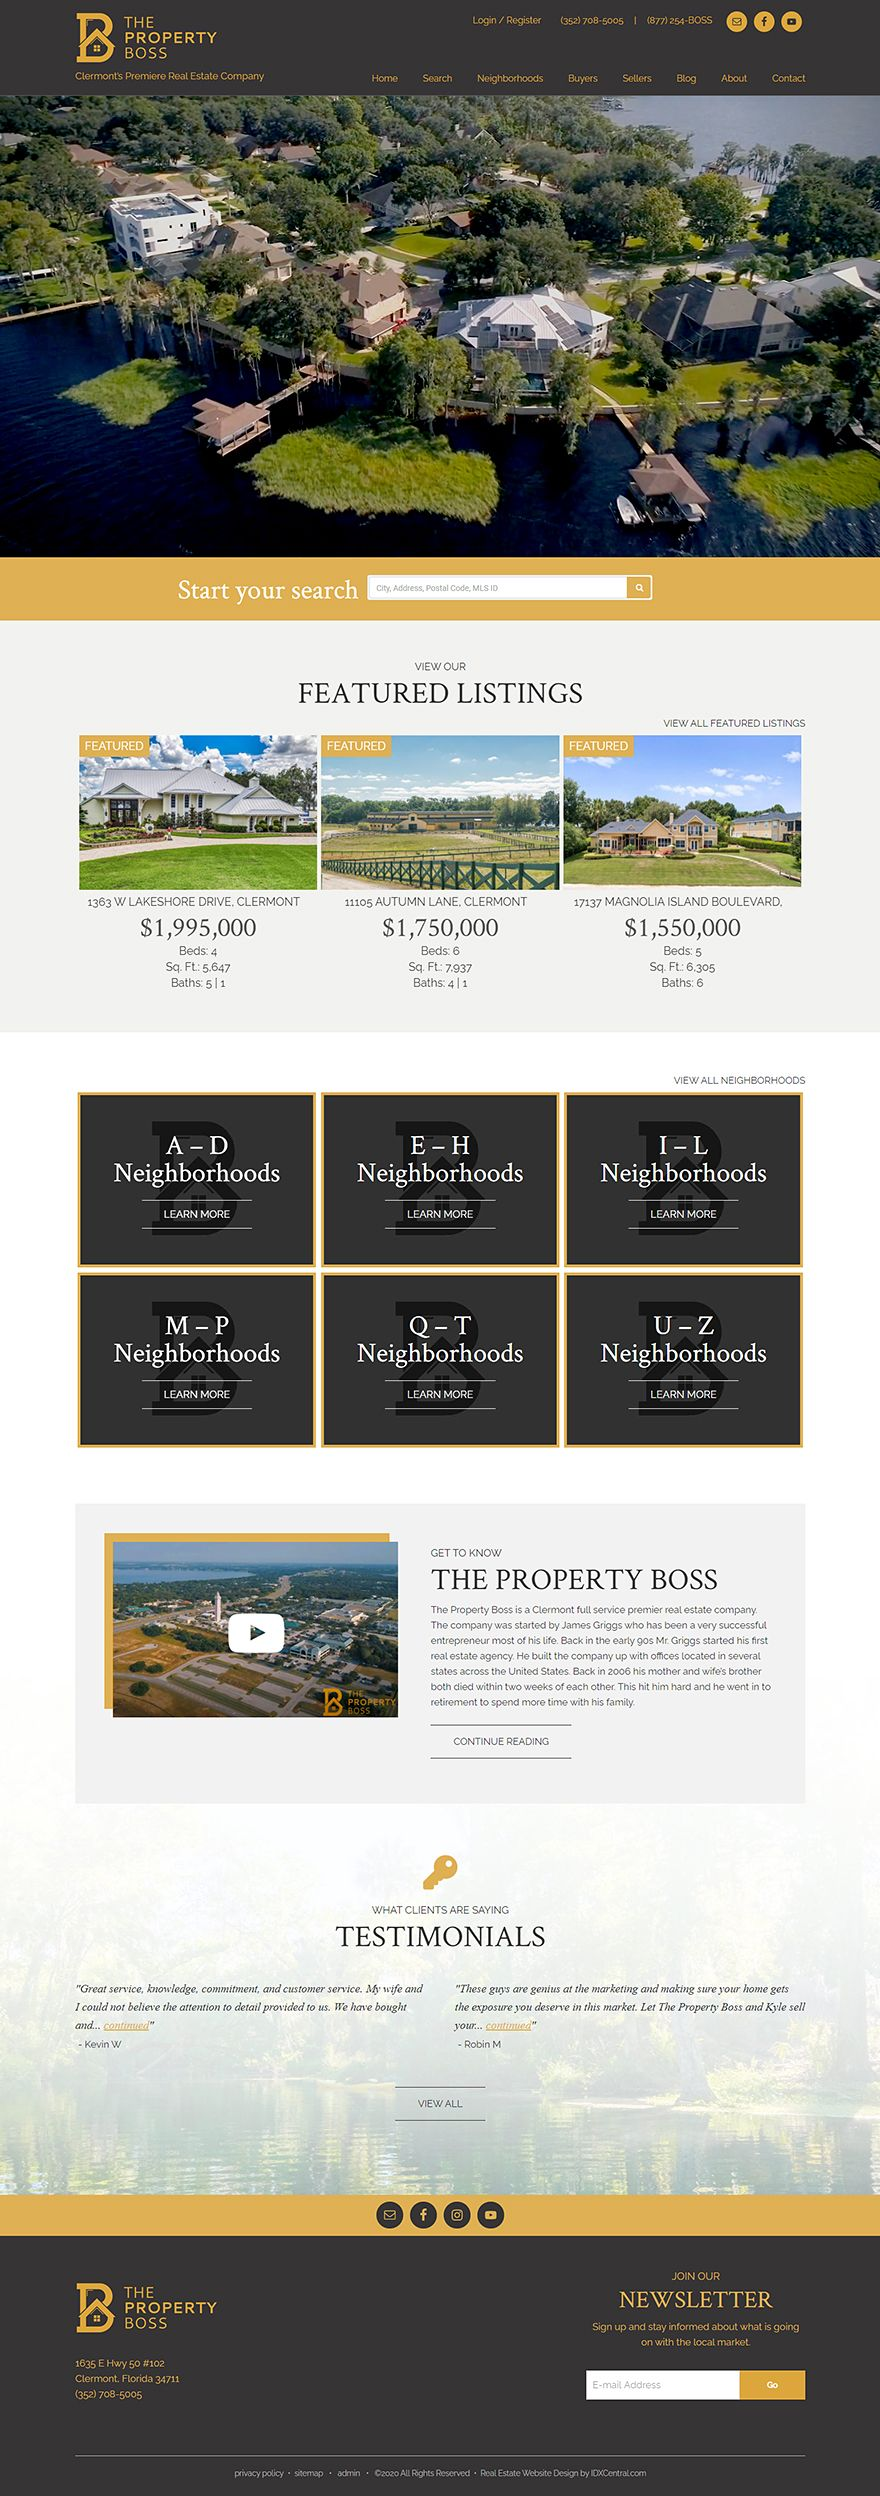 Florida The Property Boss Is A Full Service Florida Real Estate Company Their Indepth Websit In 2020 Real Estate Website Design Real Estate Website Realtor Websites